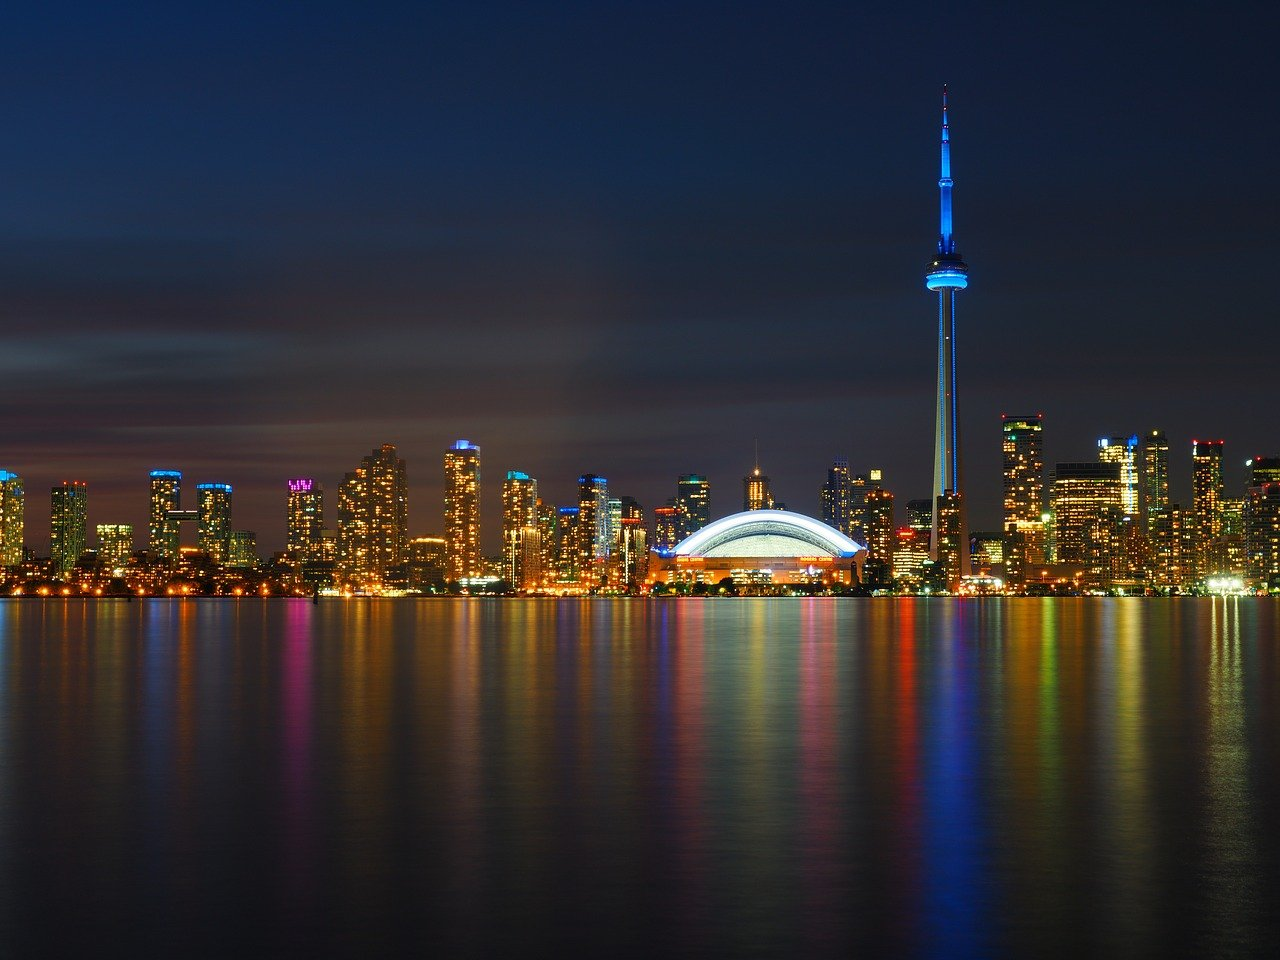 Toronto skyline at night from Lake Ontario.